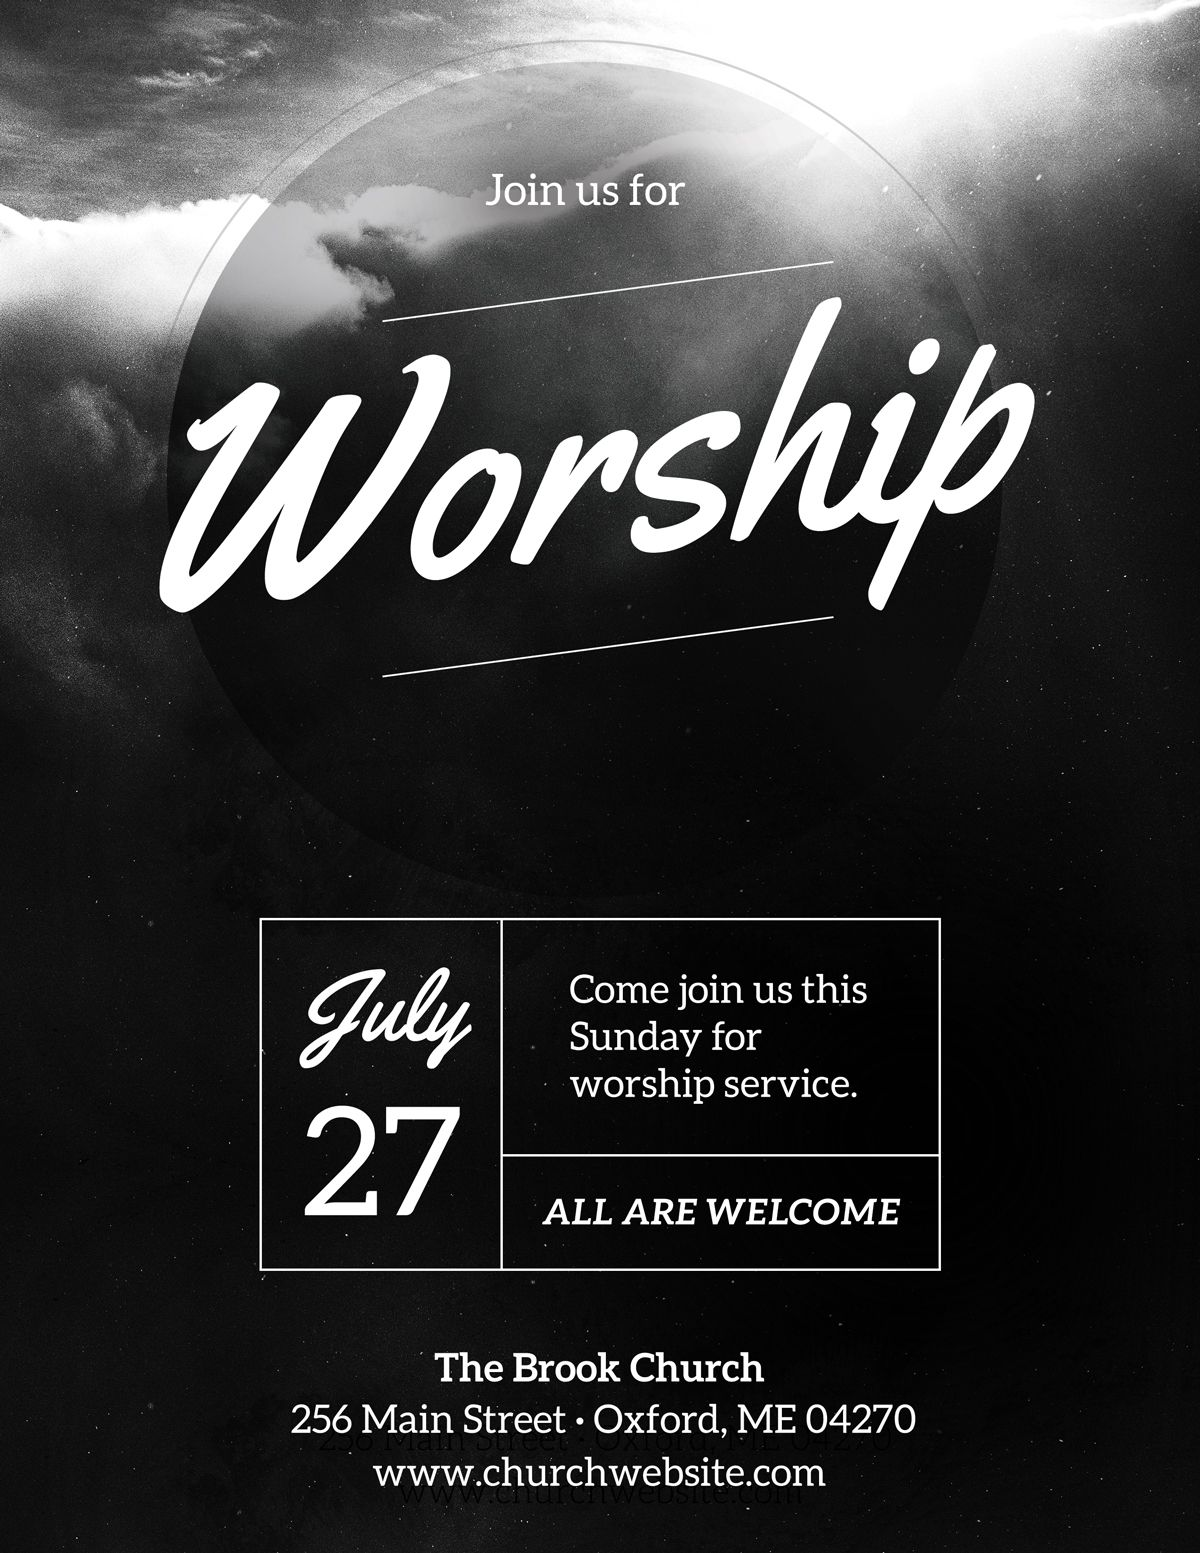 diy church event flyer template - heavenly worship